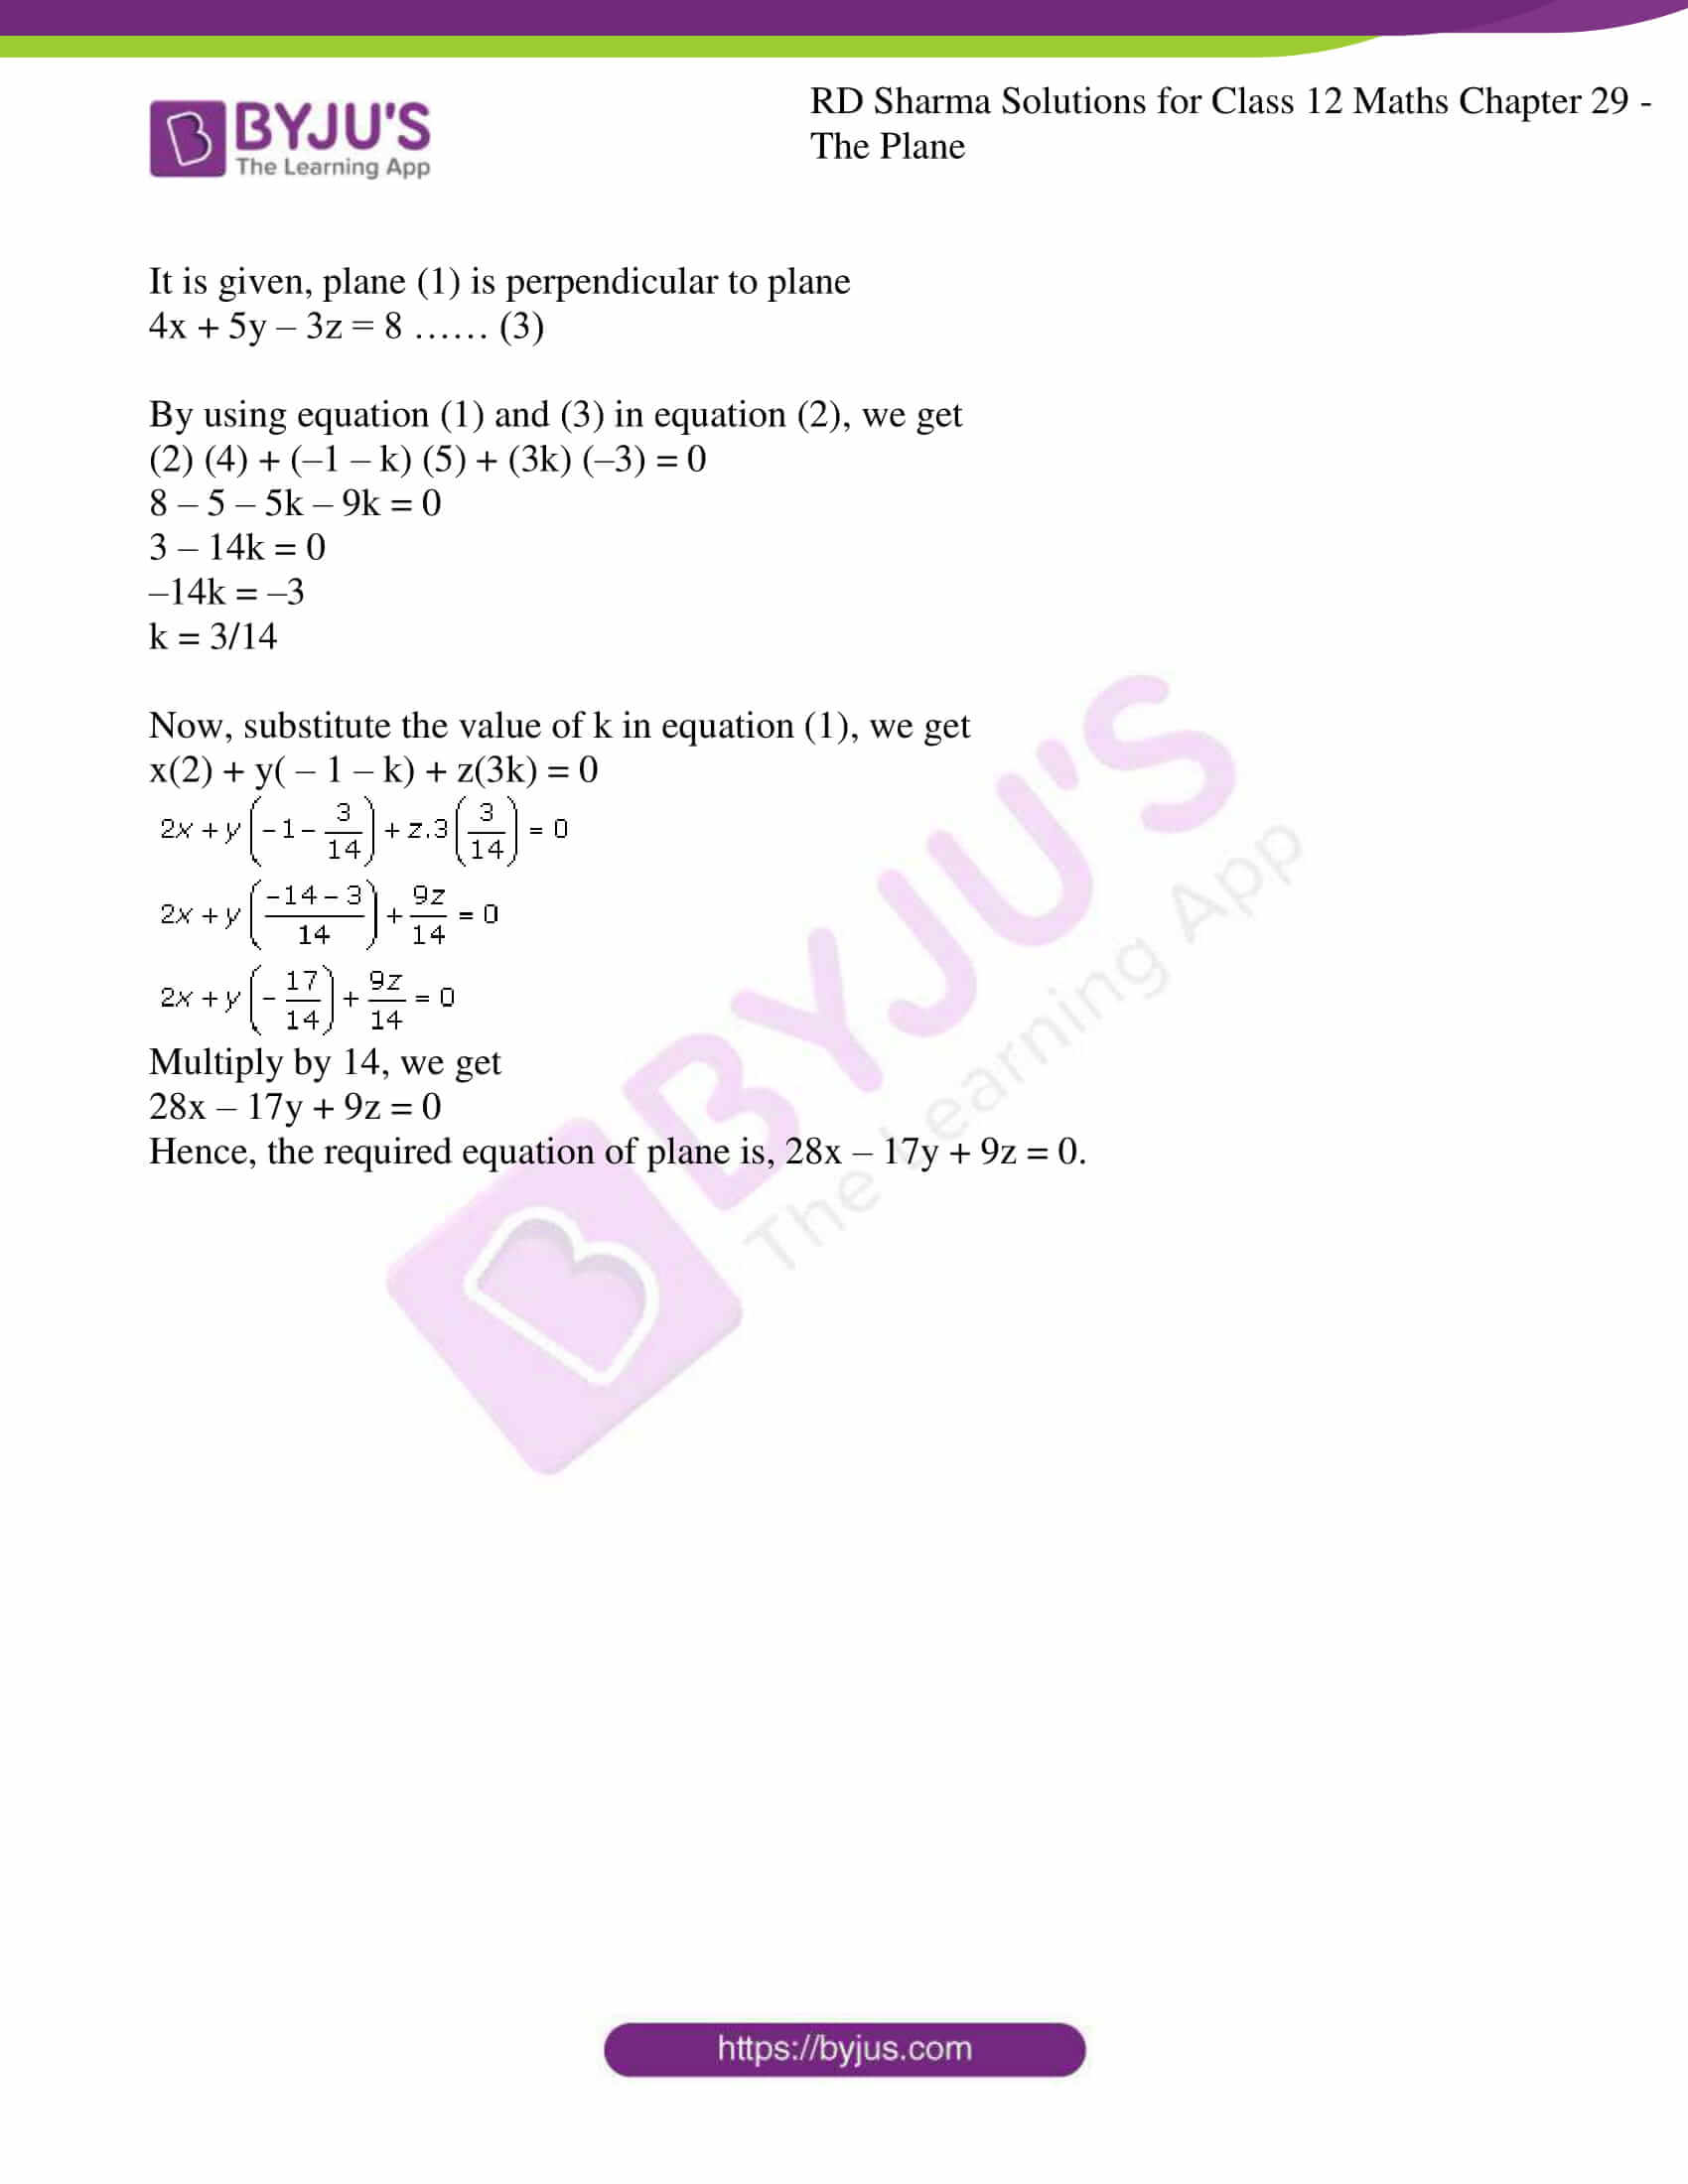 rd sharma solutions for class 12 maths chapter 29 ex 8 4